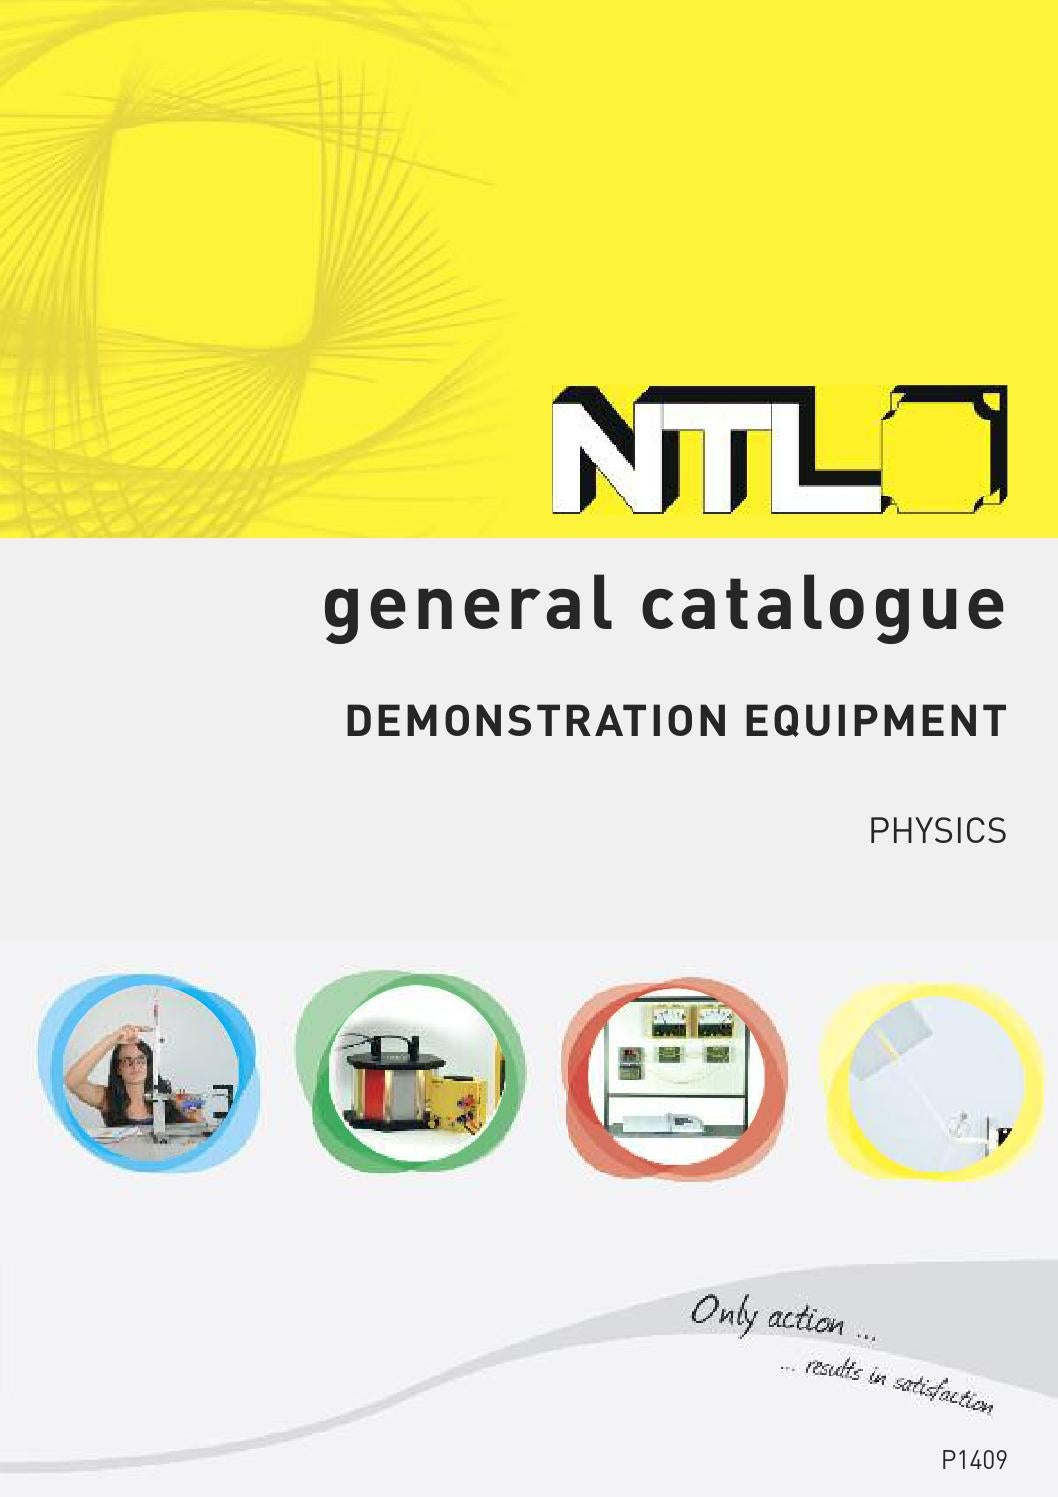 General Catalogue 2014 By Fruhmann Gmbh Ntl Manufacturer Led Drivers 3w 6w 12v 24v Overload Overheat Opencircuit Wholesaler Issuu